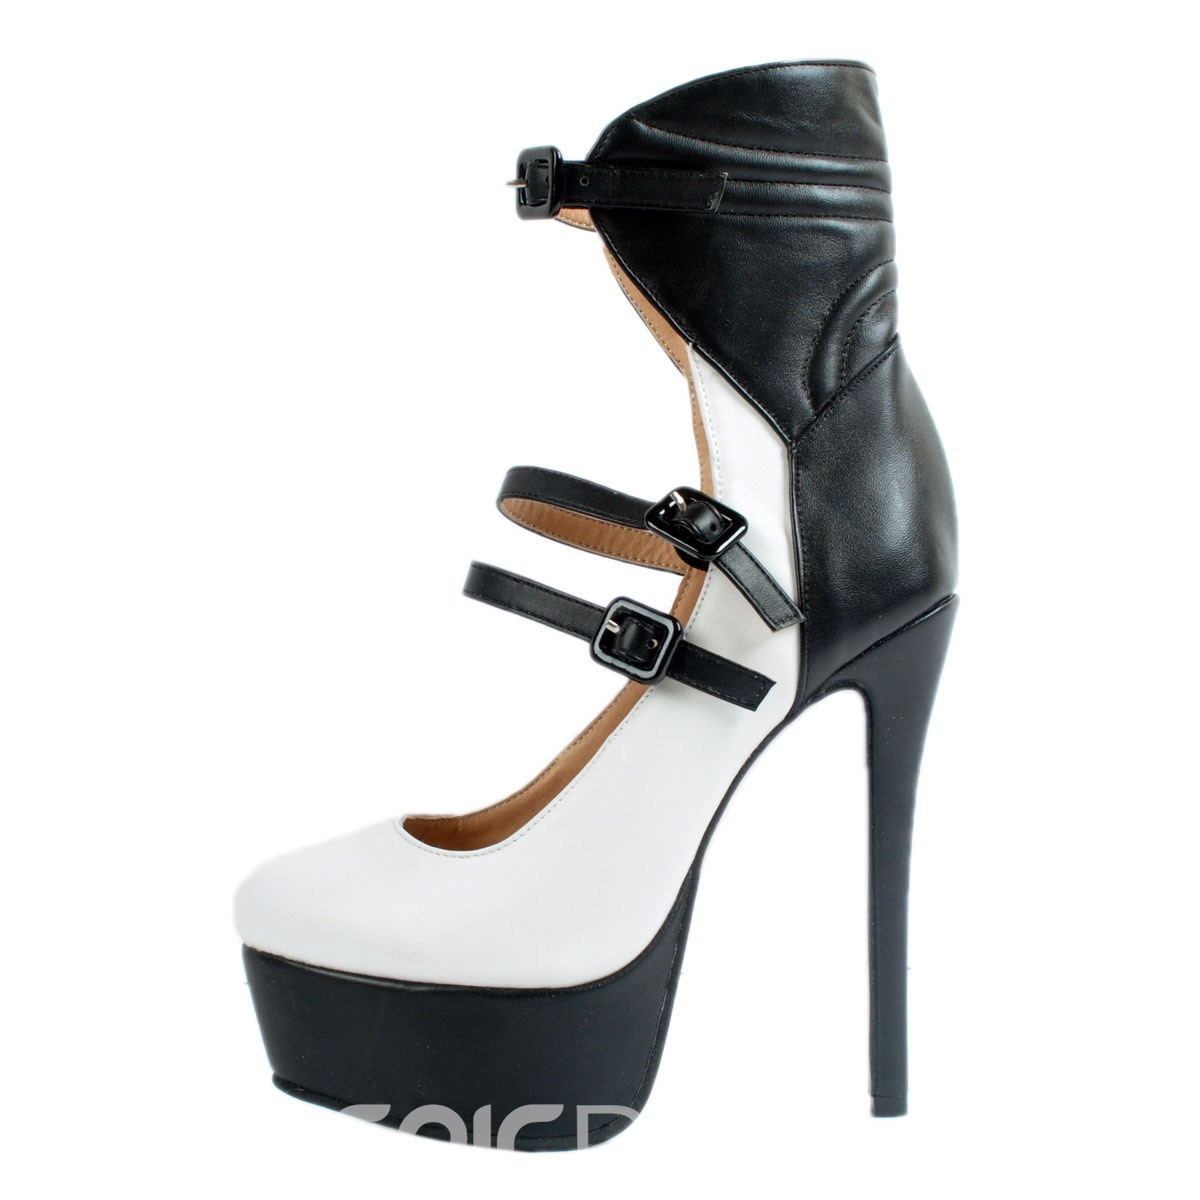 Ericdress Color Block Platform Stiletto Pumps with Buckle